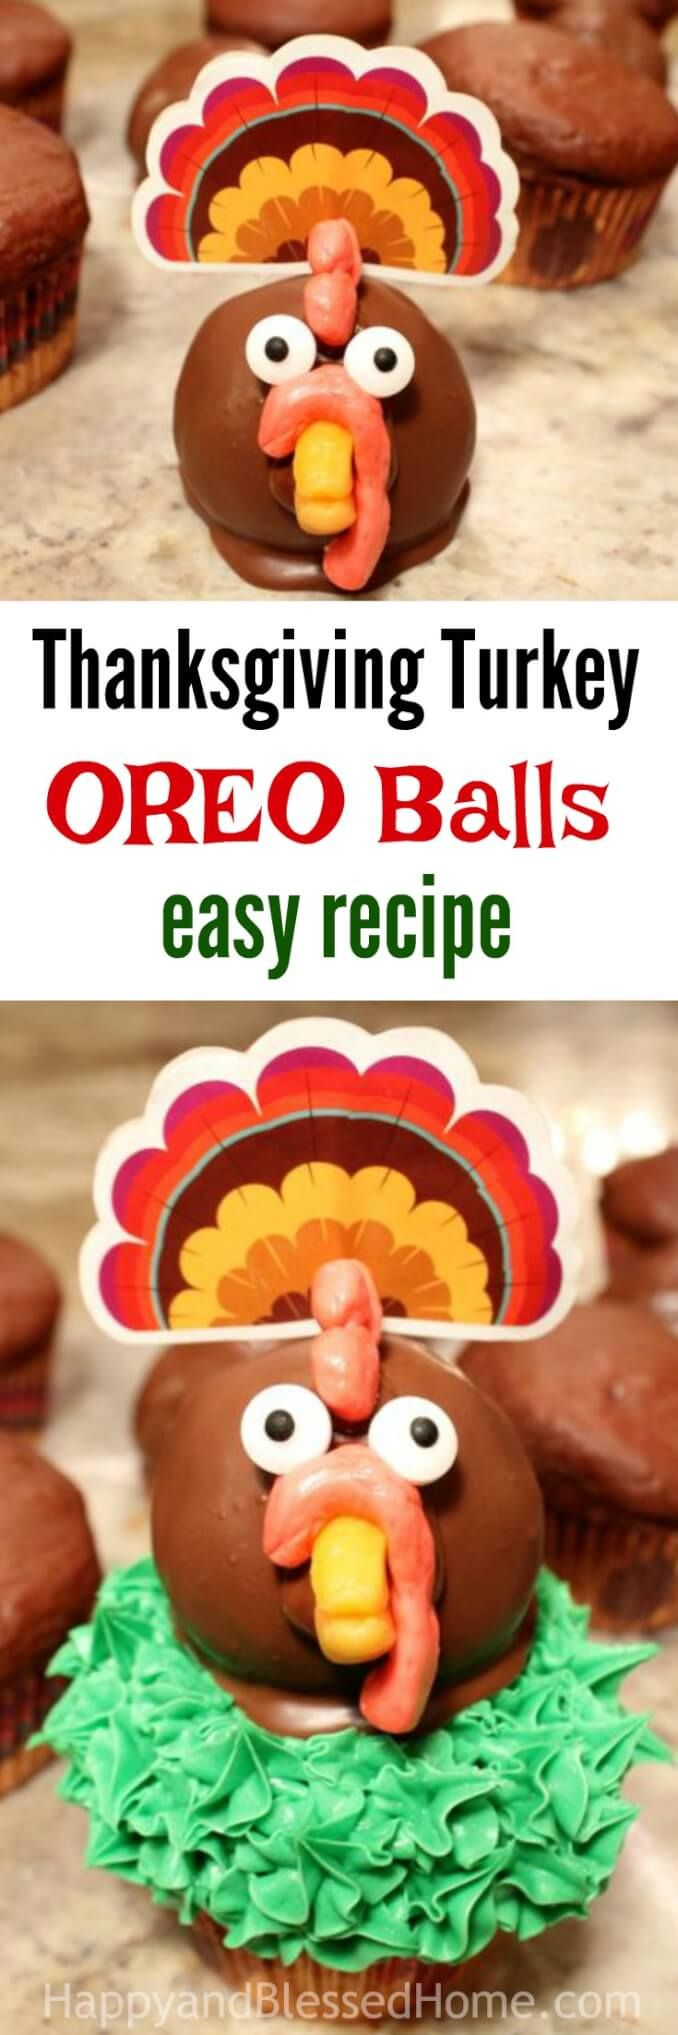 Thanksgiving Turkey OREO Balls Recipe - perfect for your Thanksgiving Day Meal